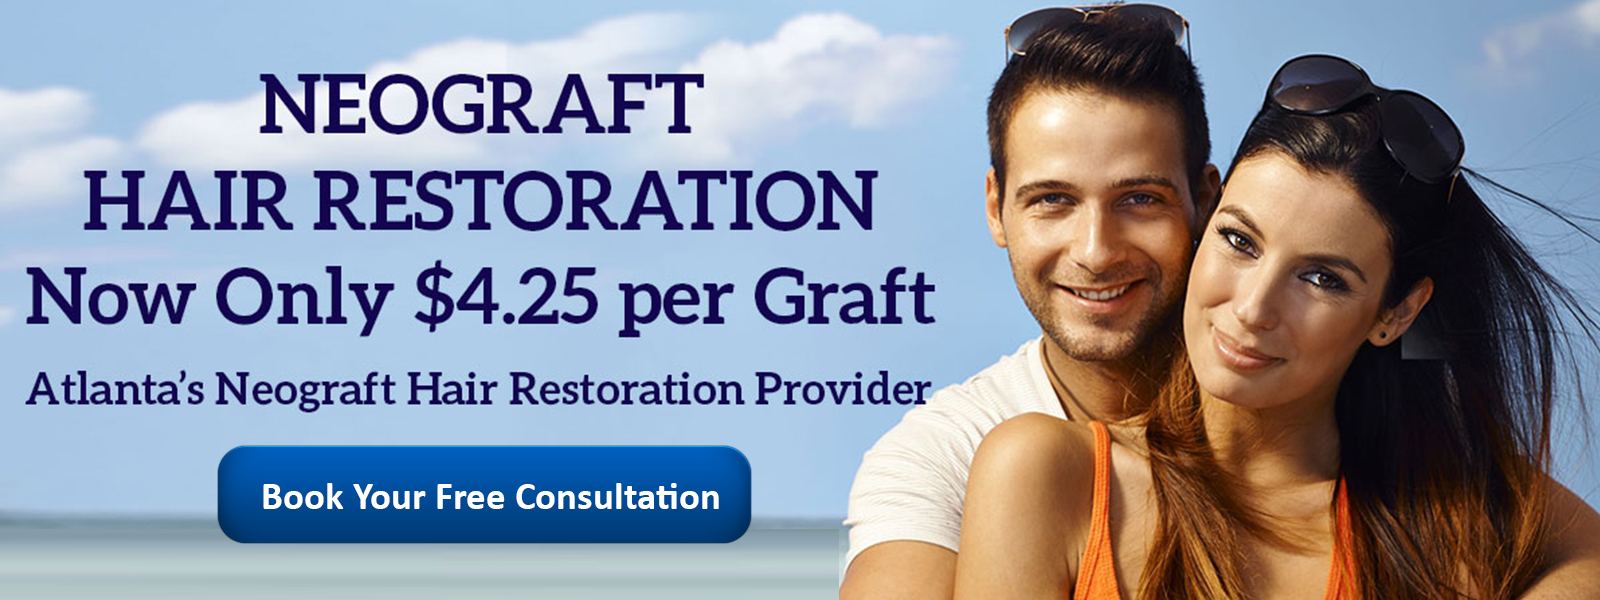 Neograft Hair Restoration Now Only $4.25 per graft